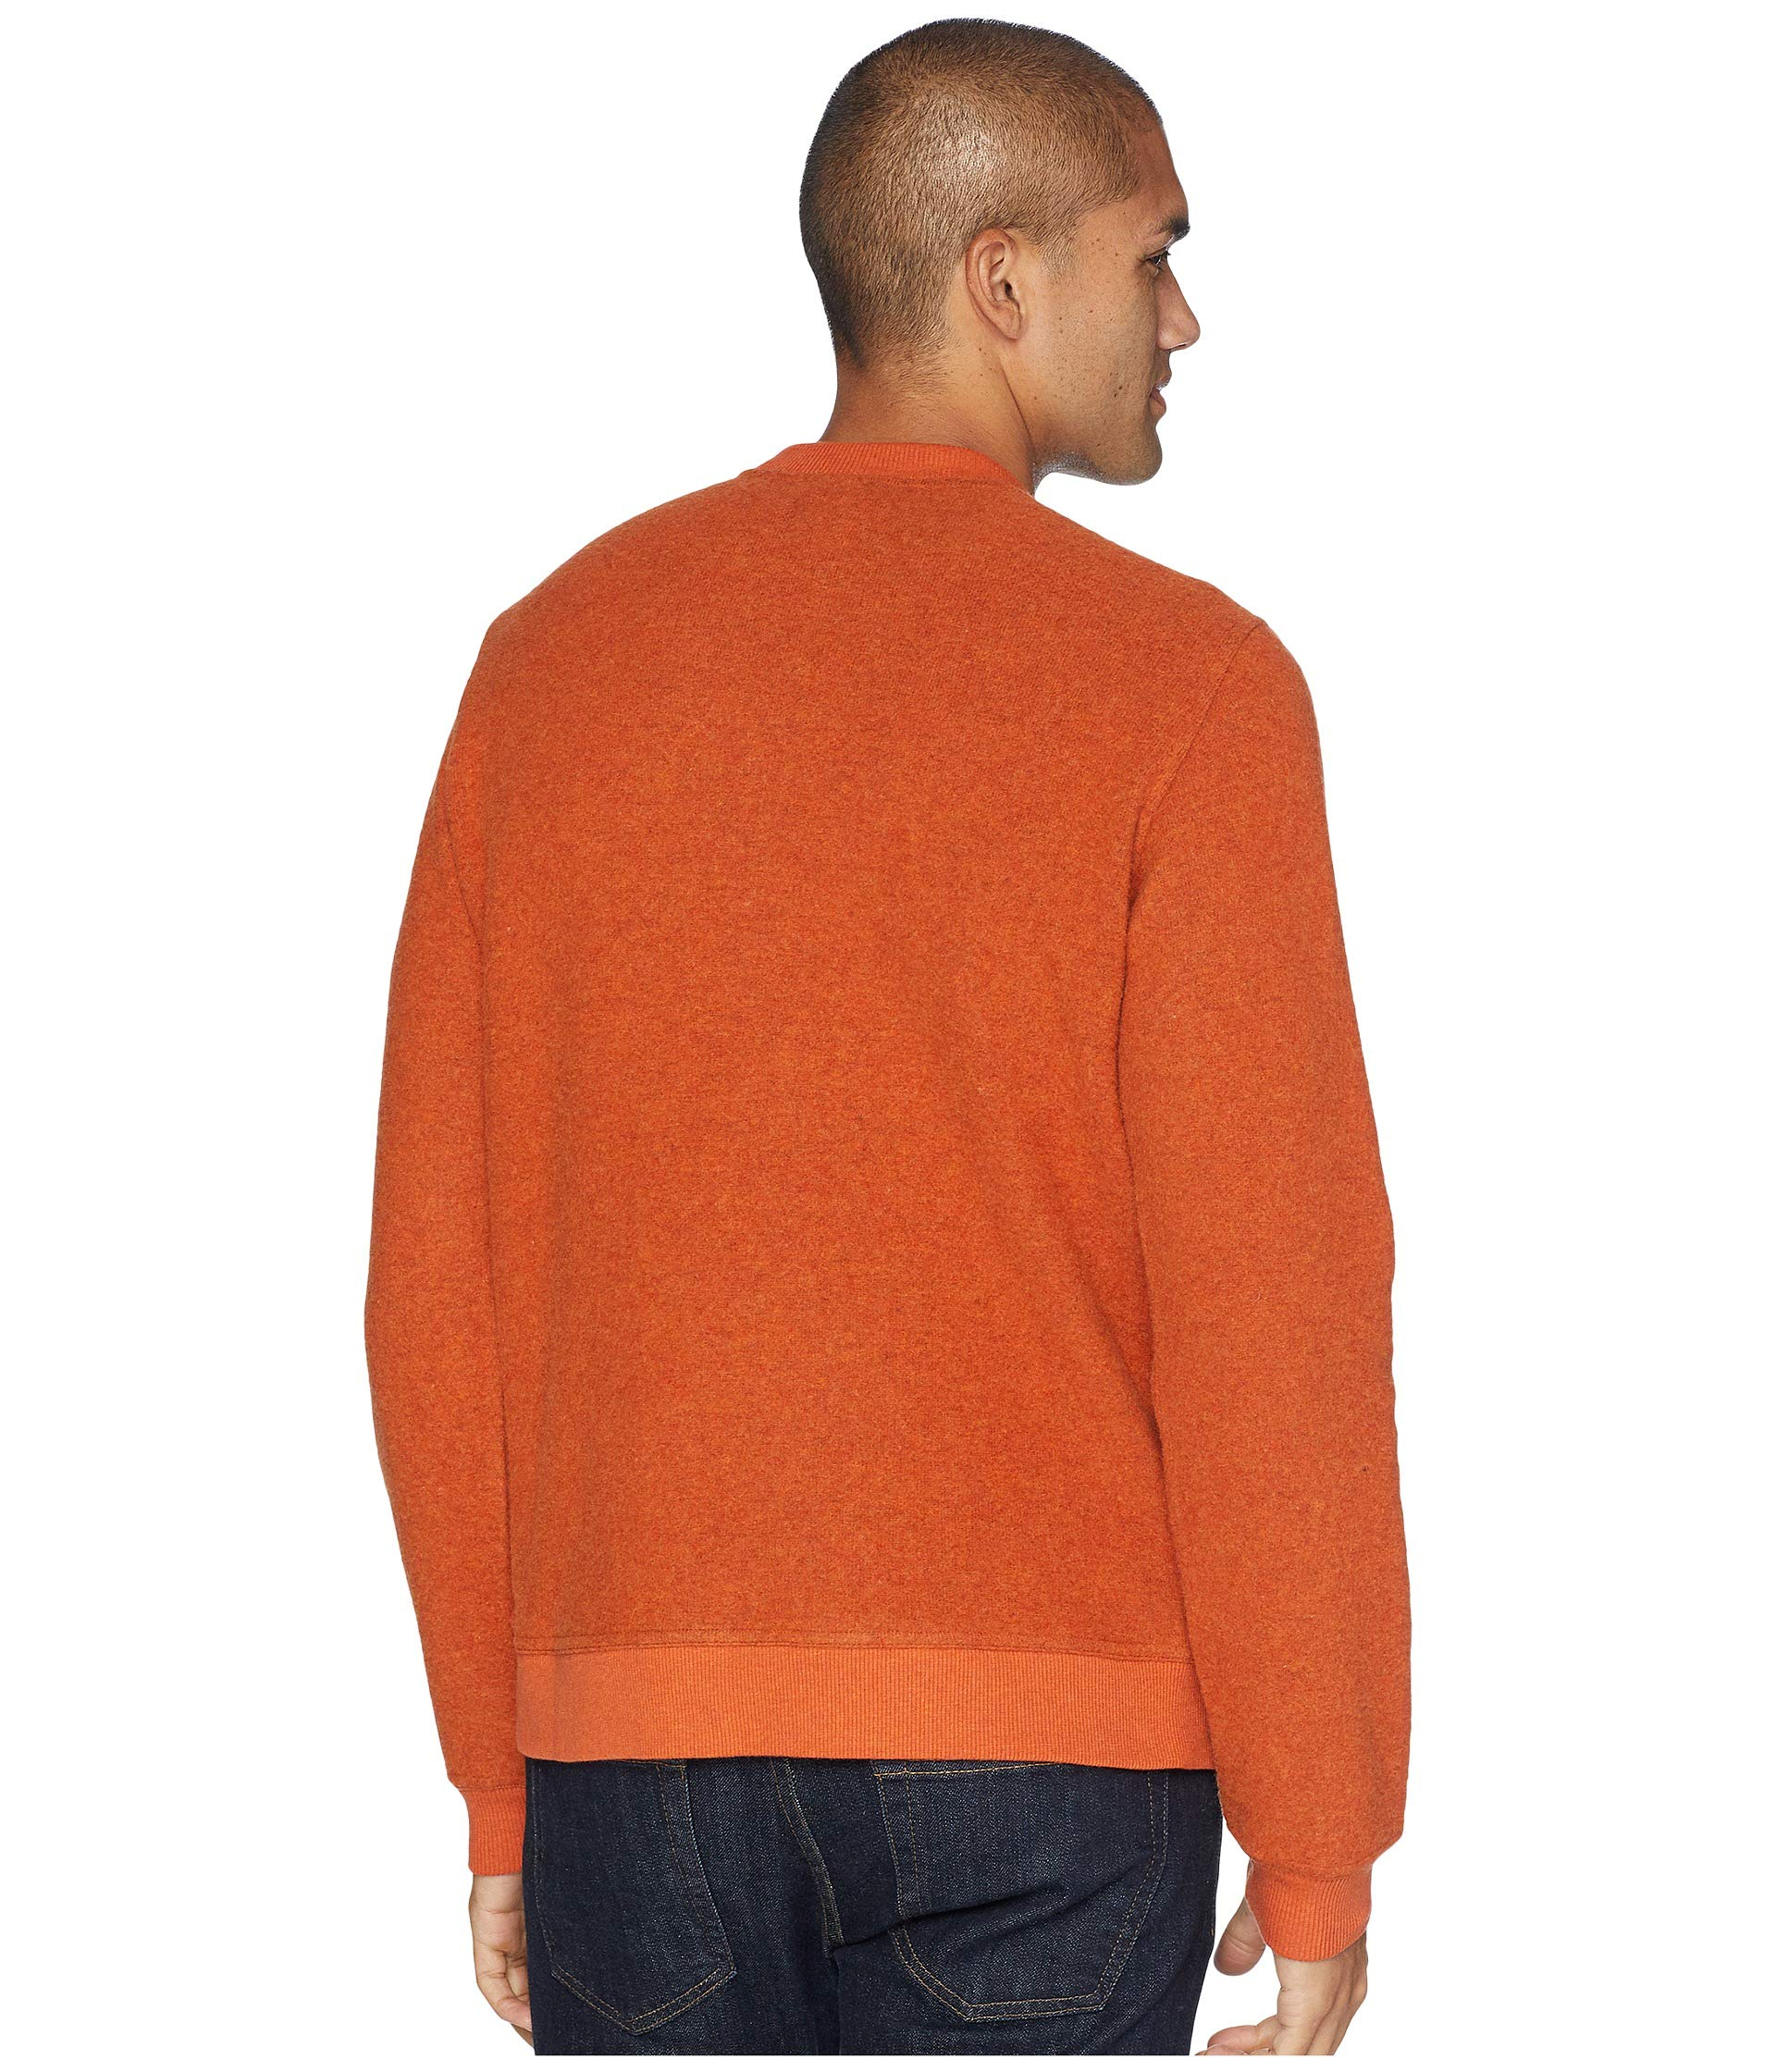 Sweater Global Topo Clay Sweater Global Designs Designs Topo 8wfBBaq